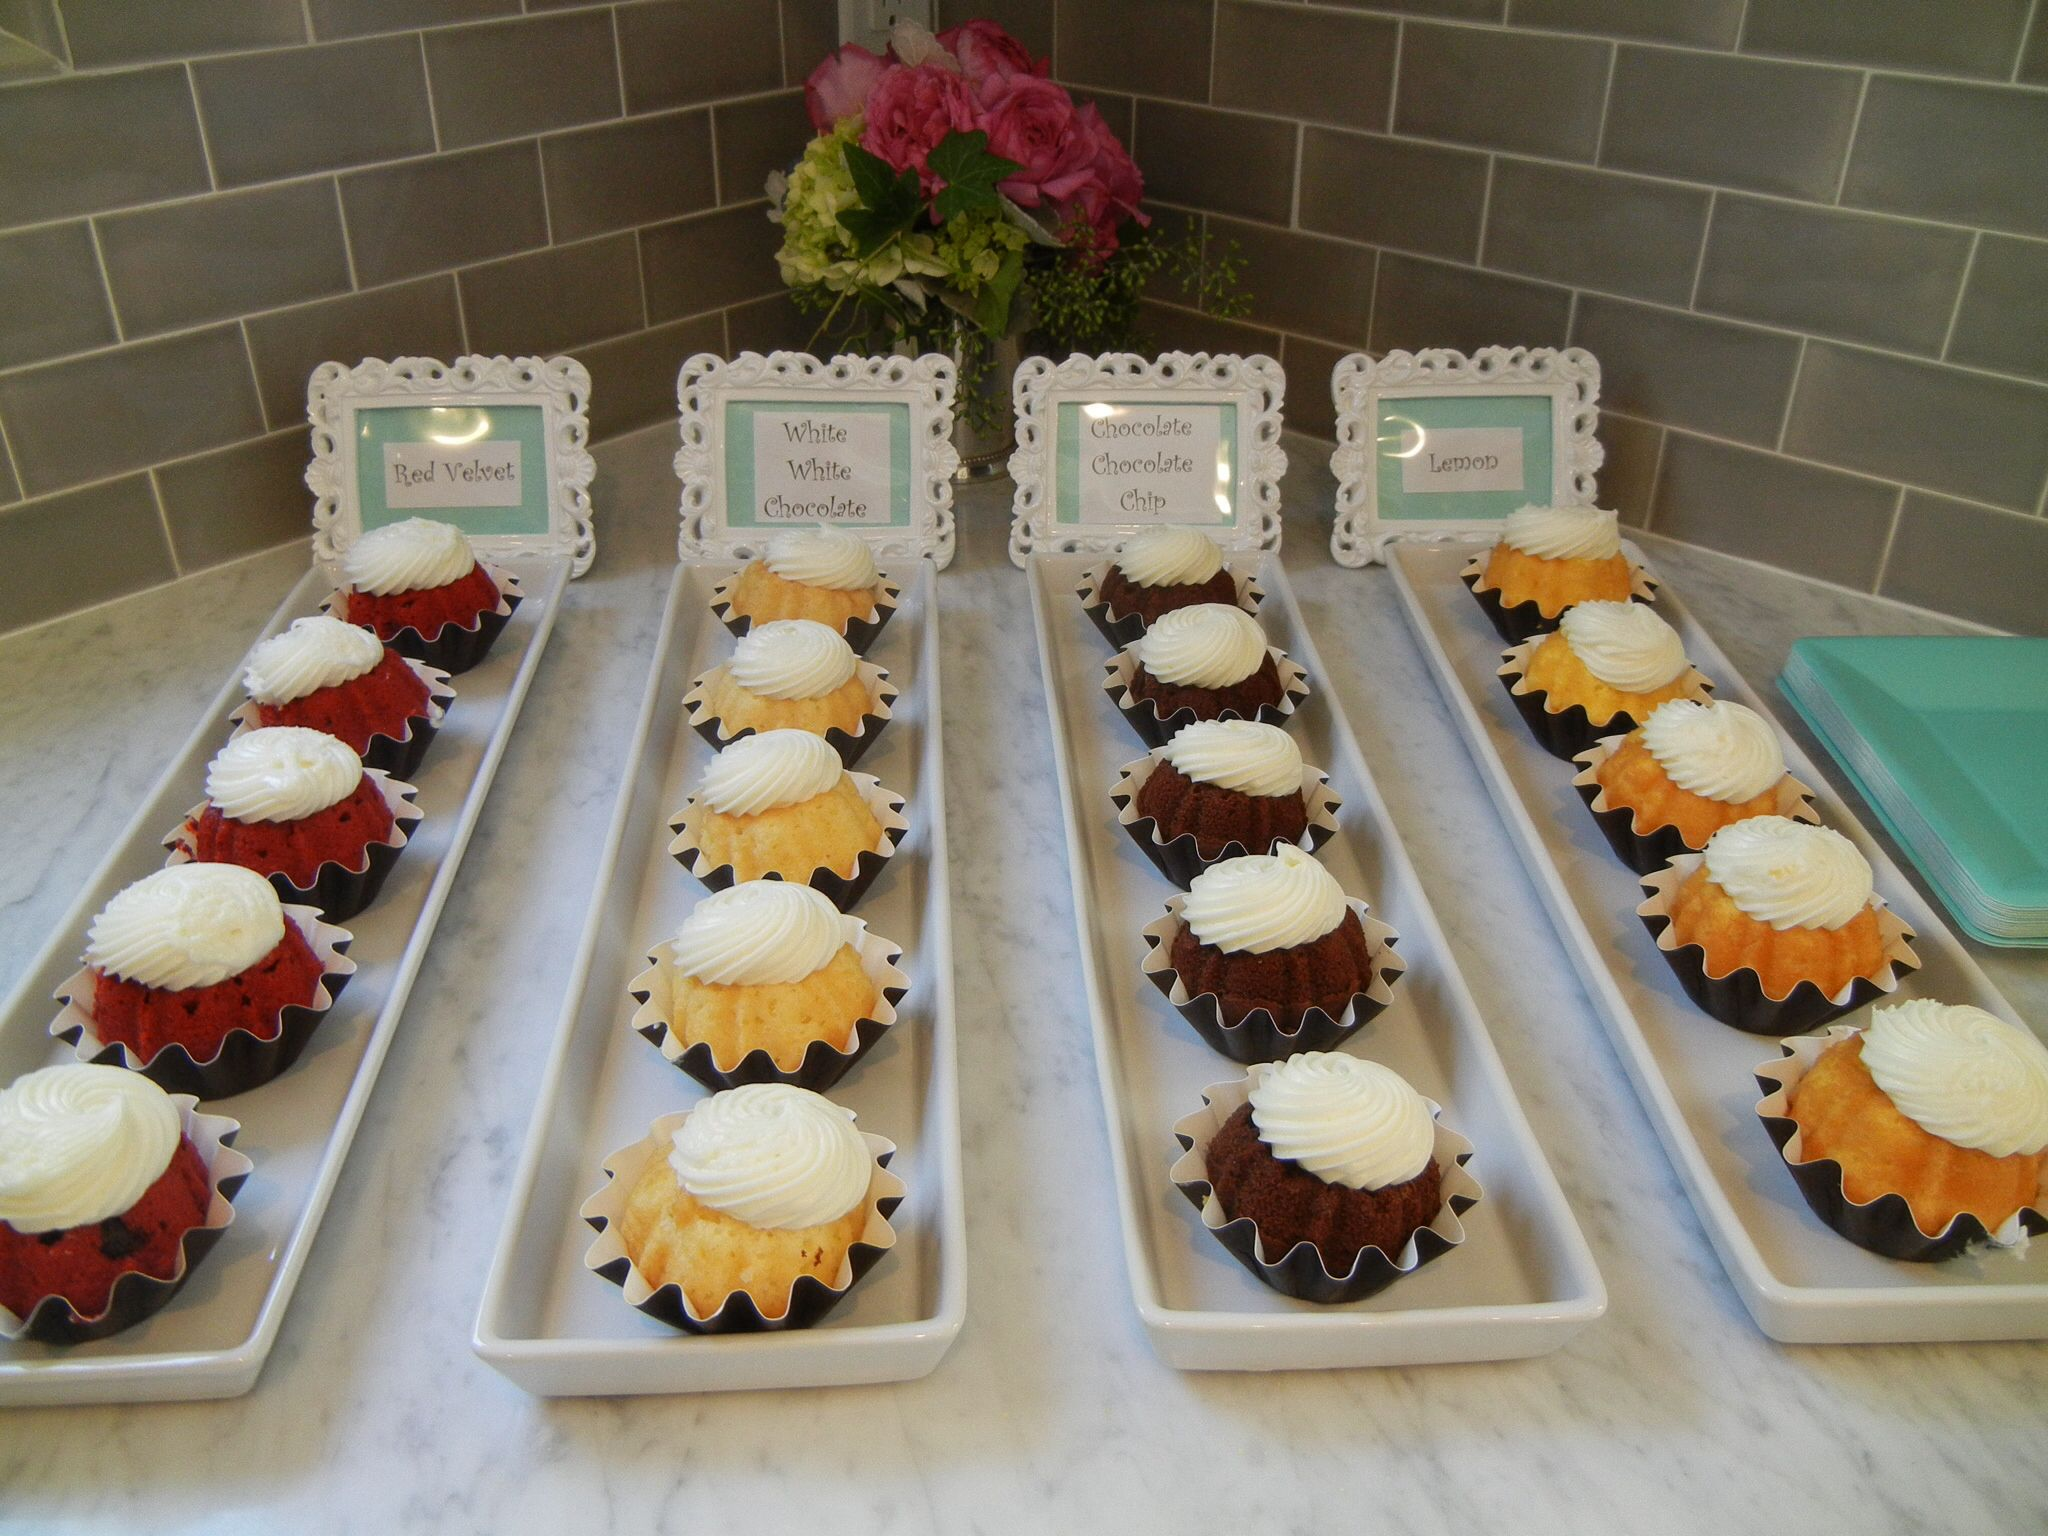 A Variety Of Bundtinis From Nothing Bundt Cakes Were A Hit